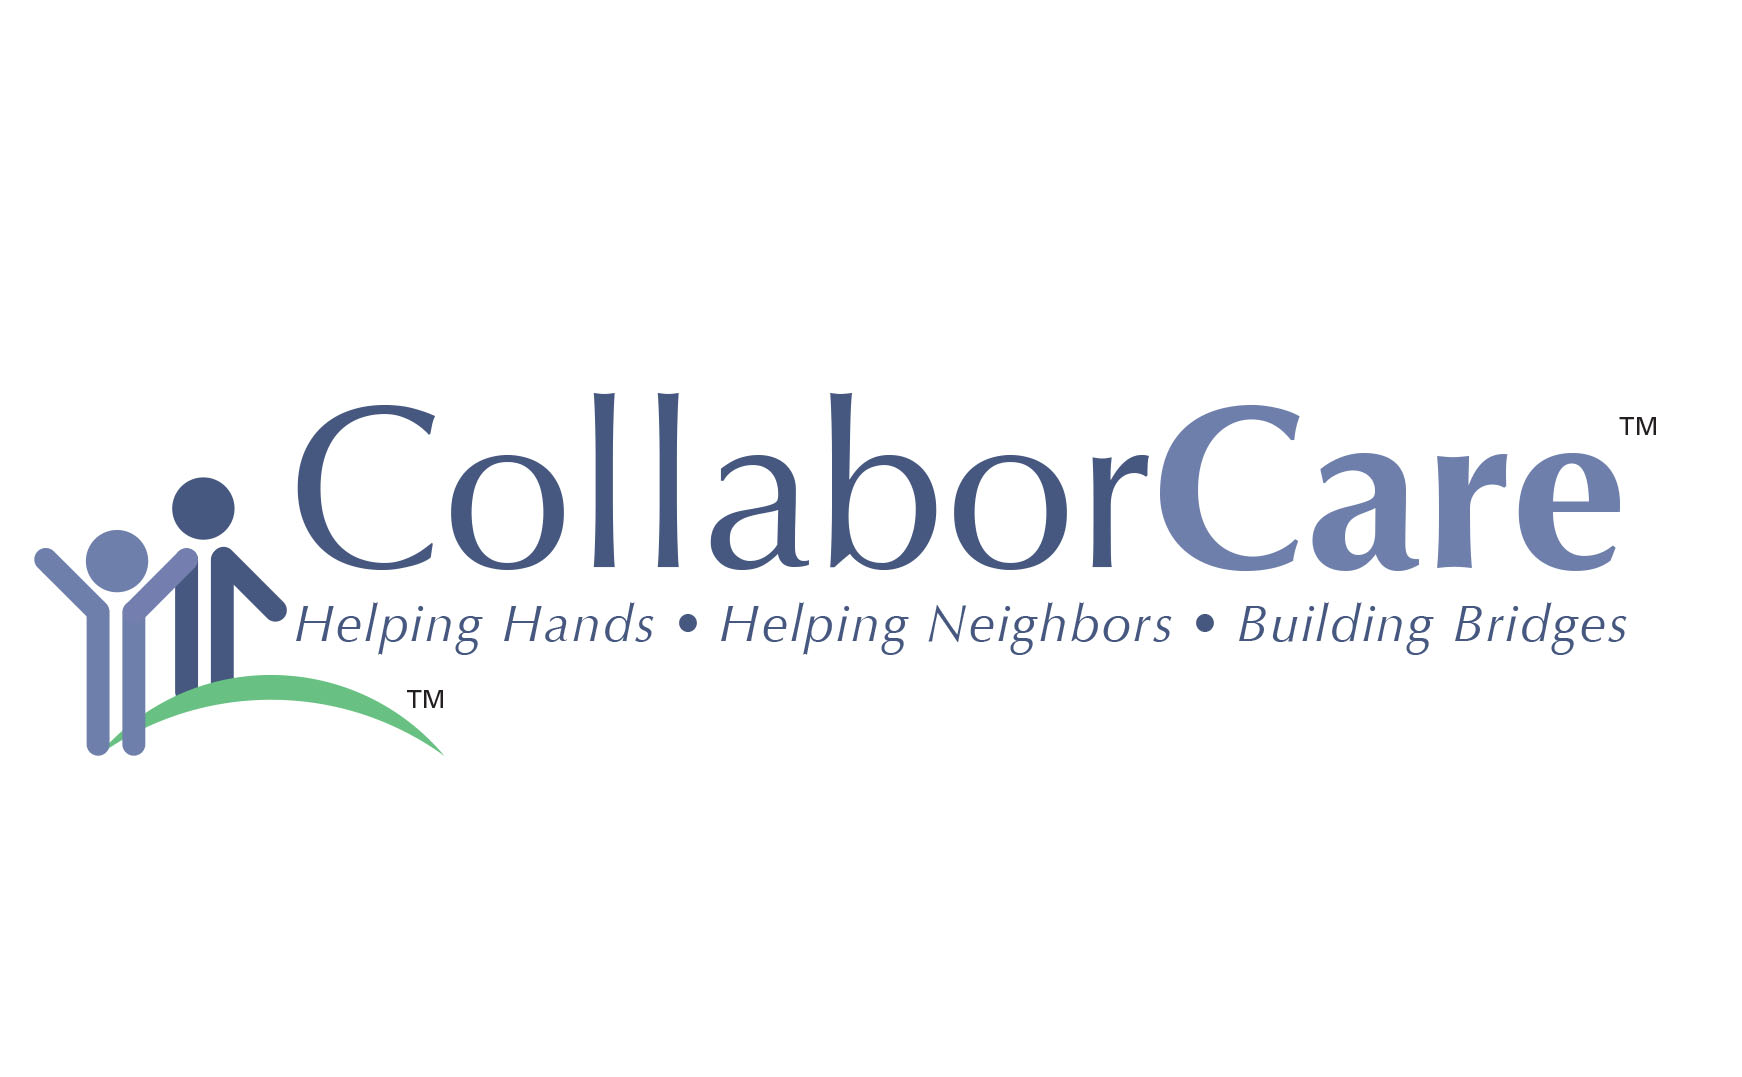 CollaborCare